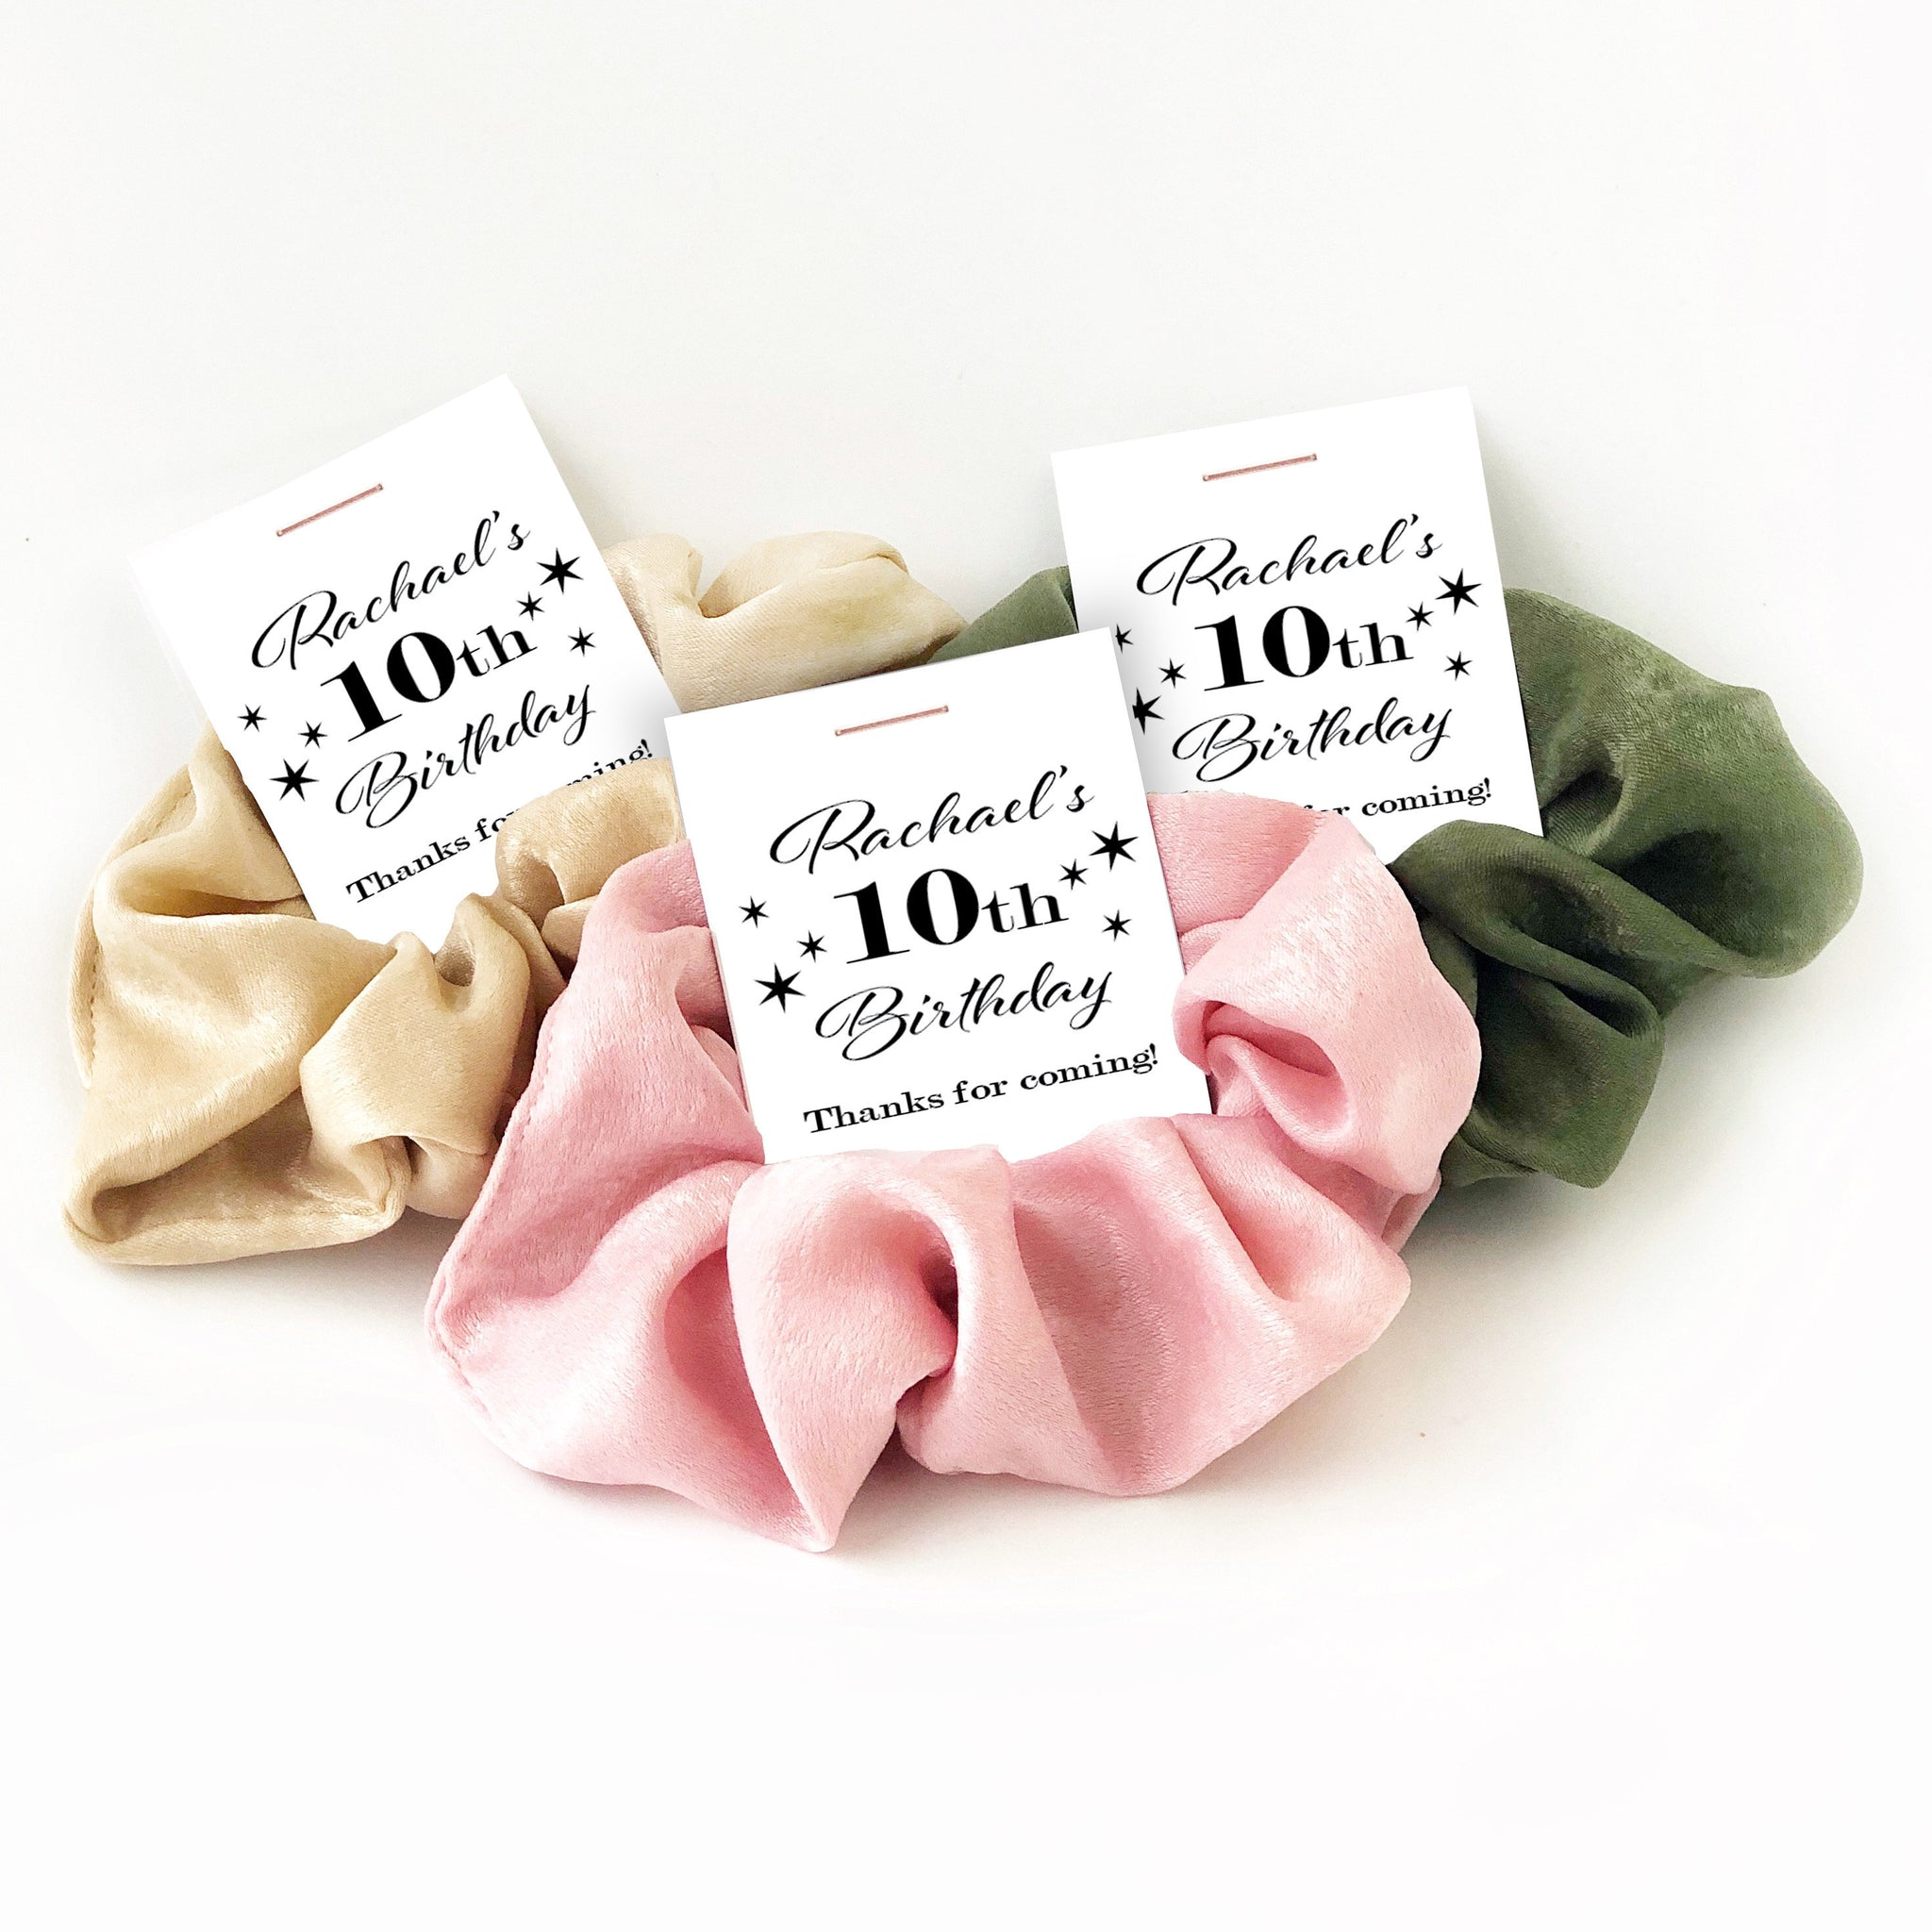 10th Birthday Party Favors, Hair Scrunchies - @PlumPolkaDot